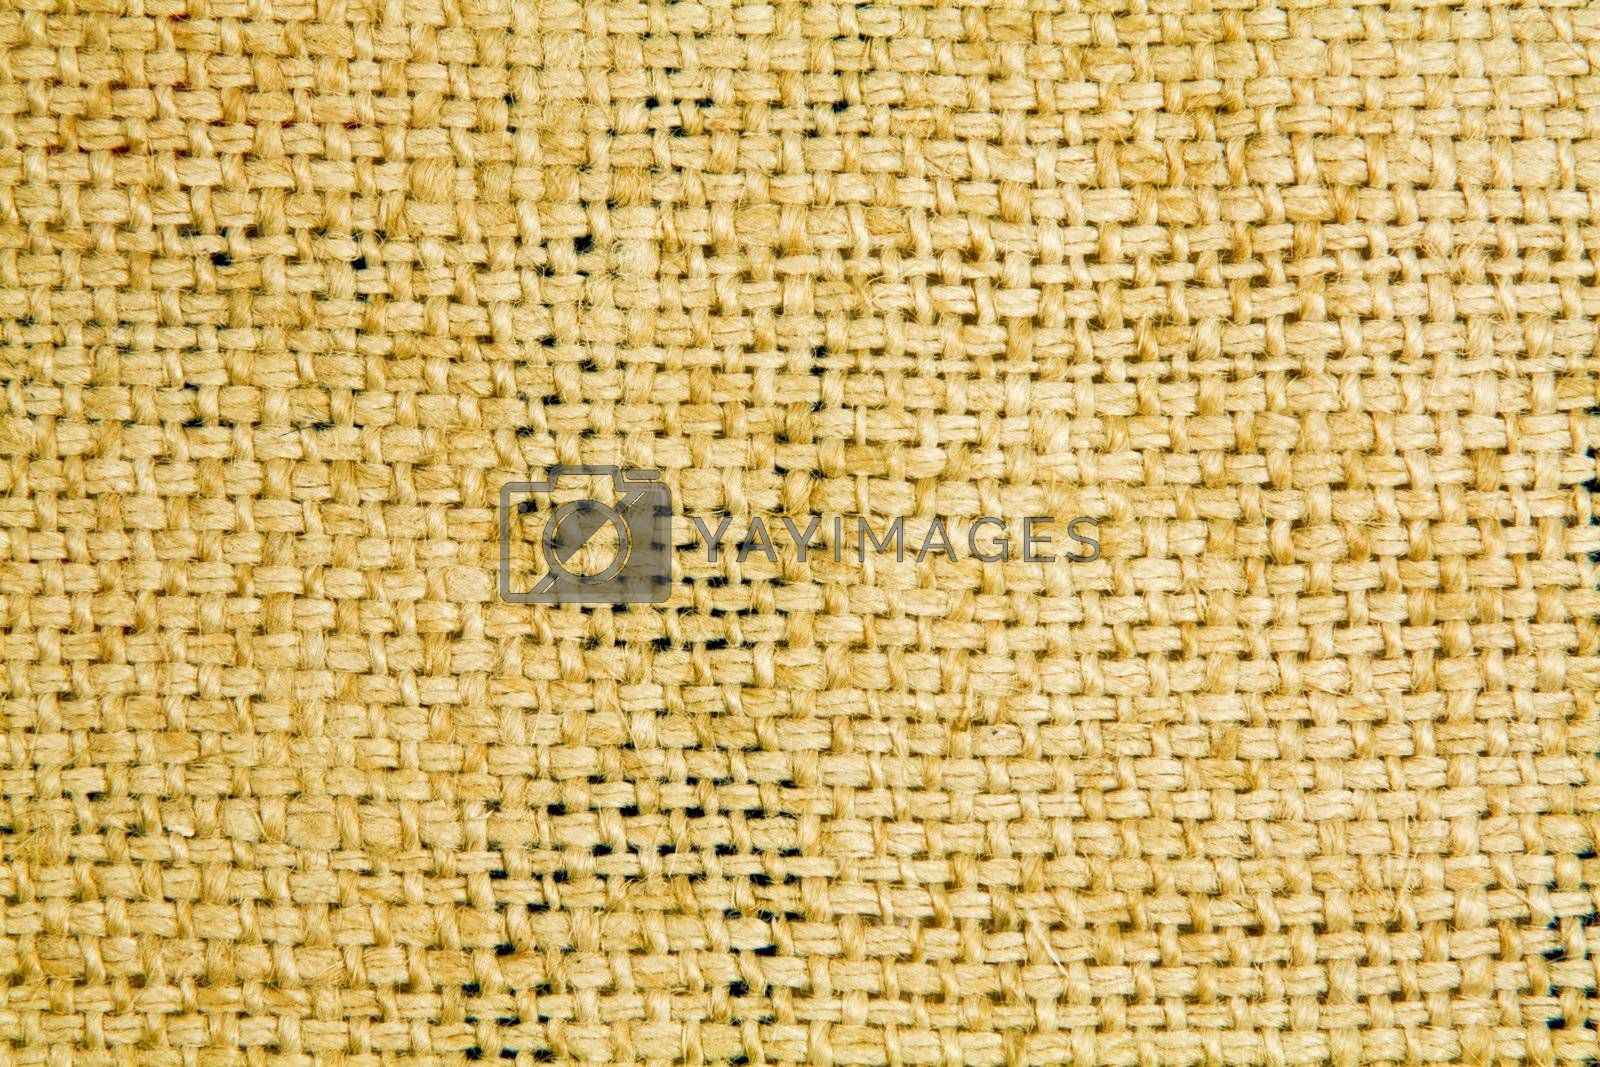 A blank grungy canvas texture. Great for backgrounds.